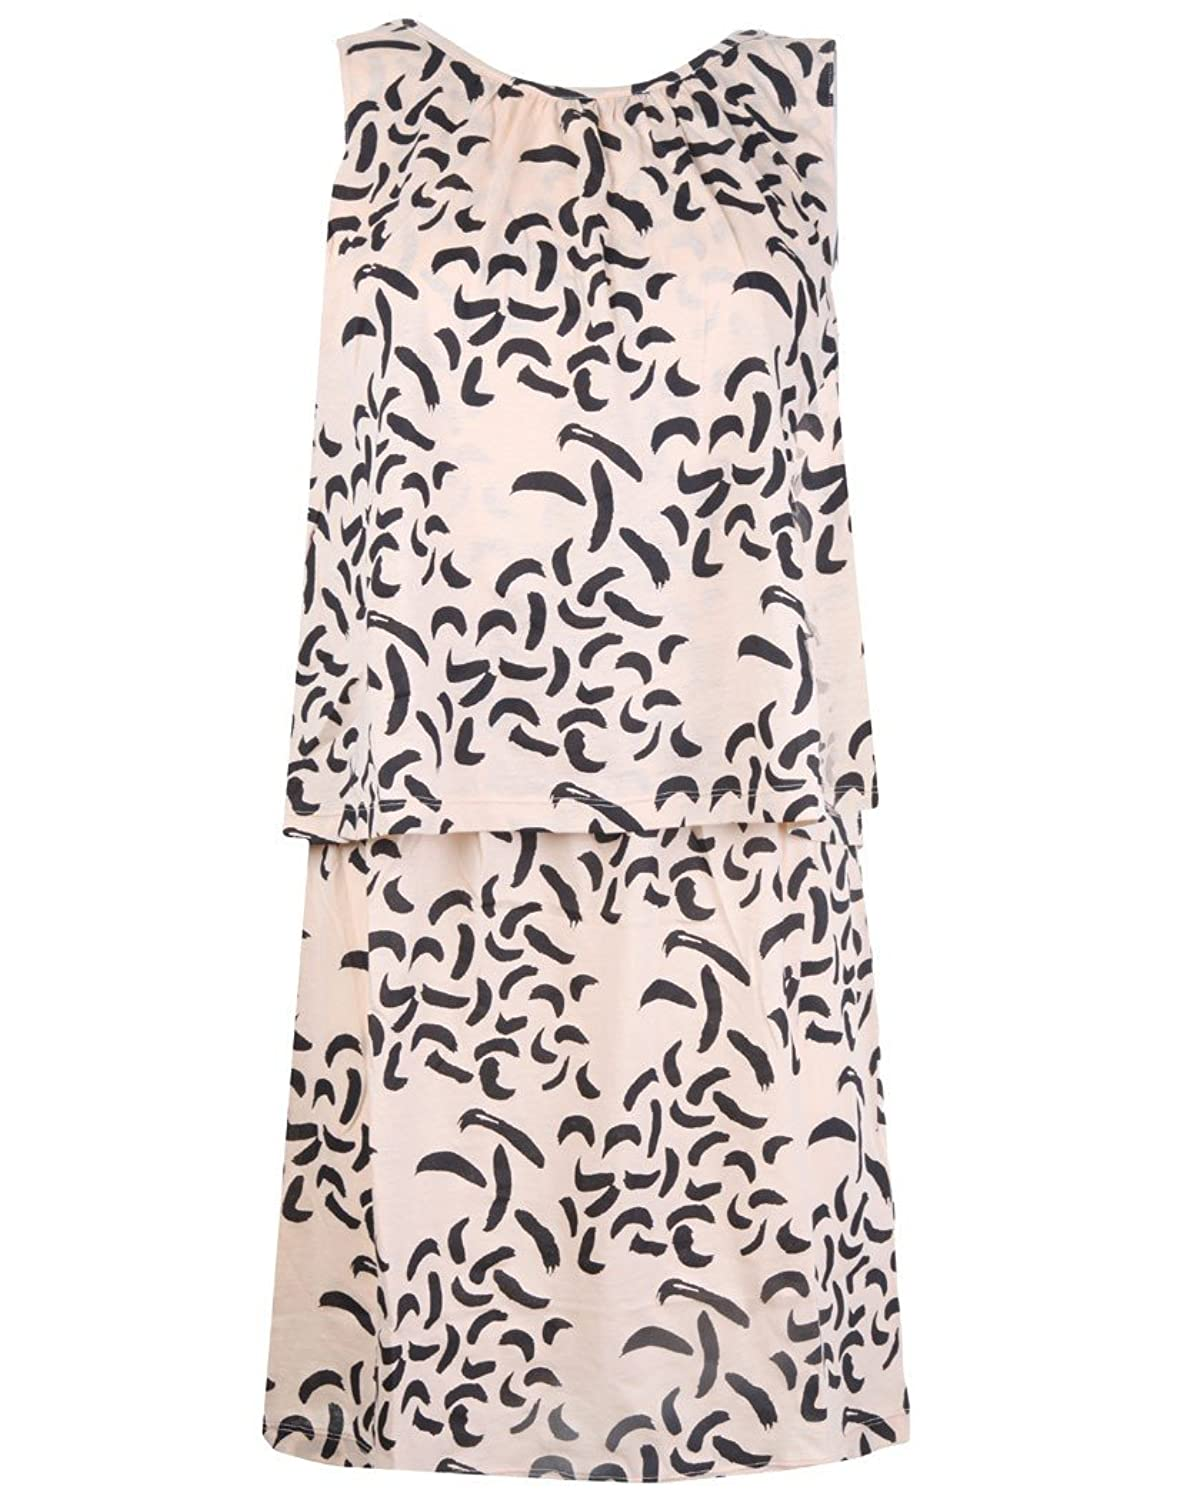 Neutral Hoss Intropia Women's Patterned Tiered Dress - Neutral